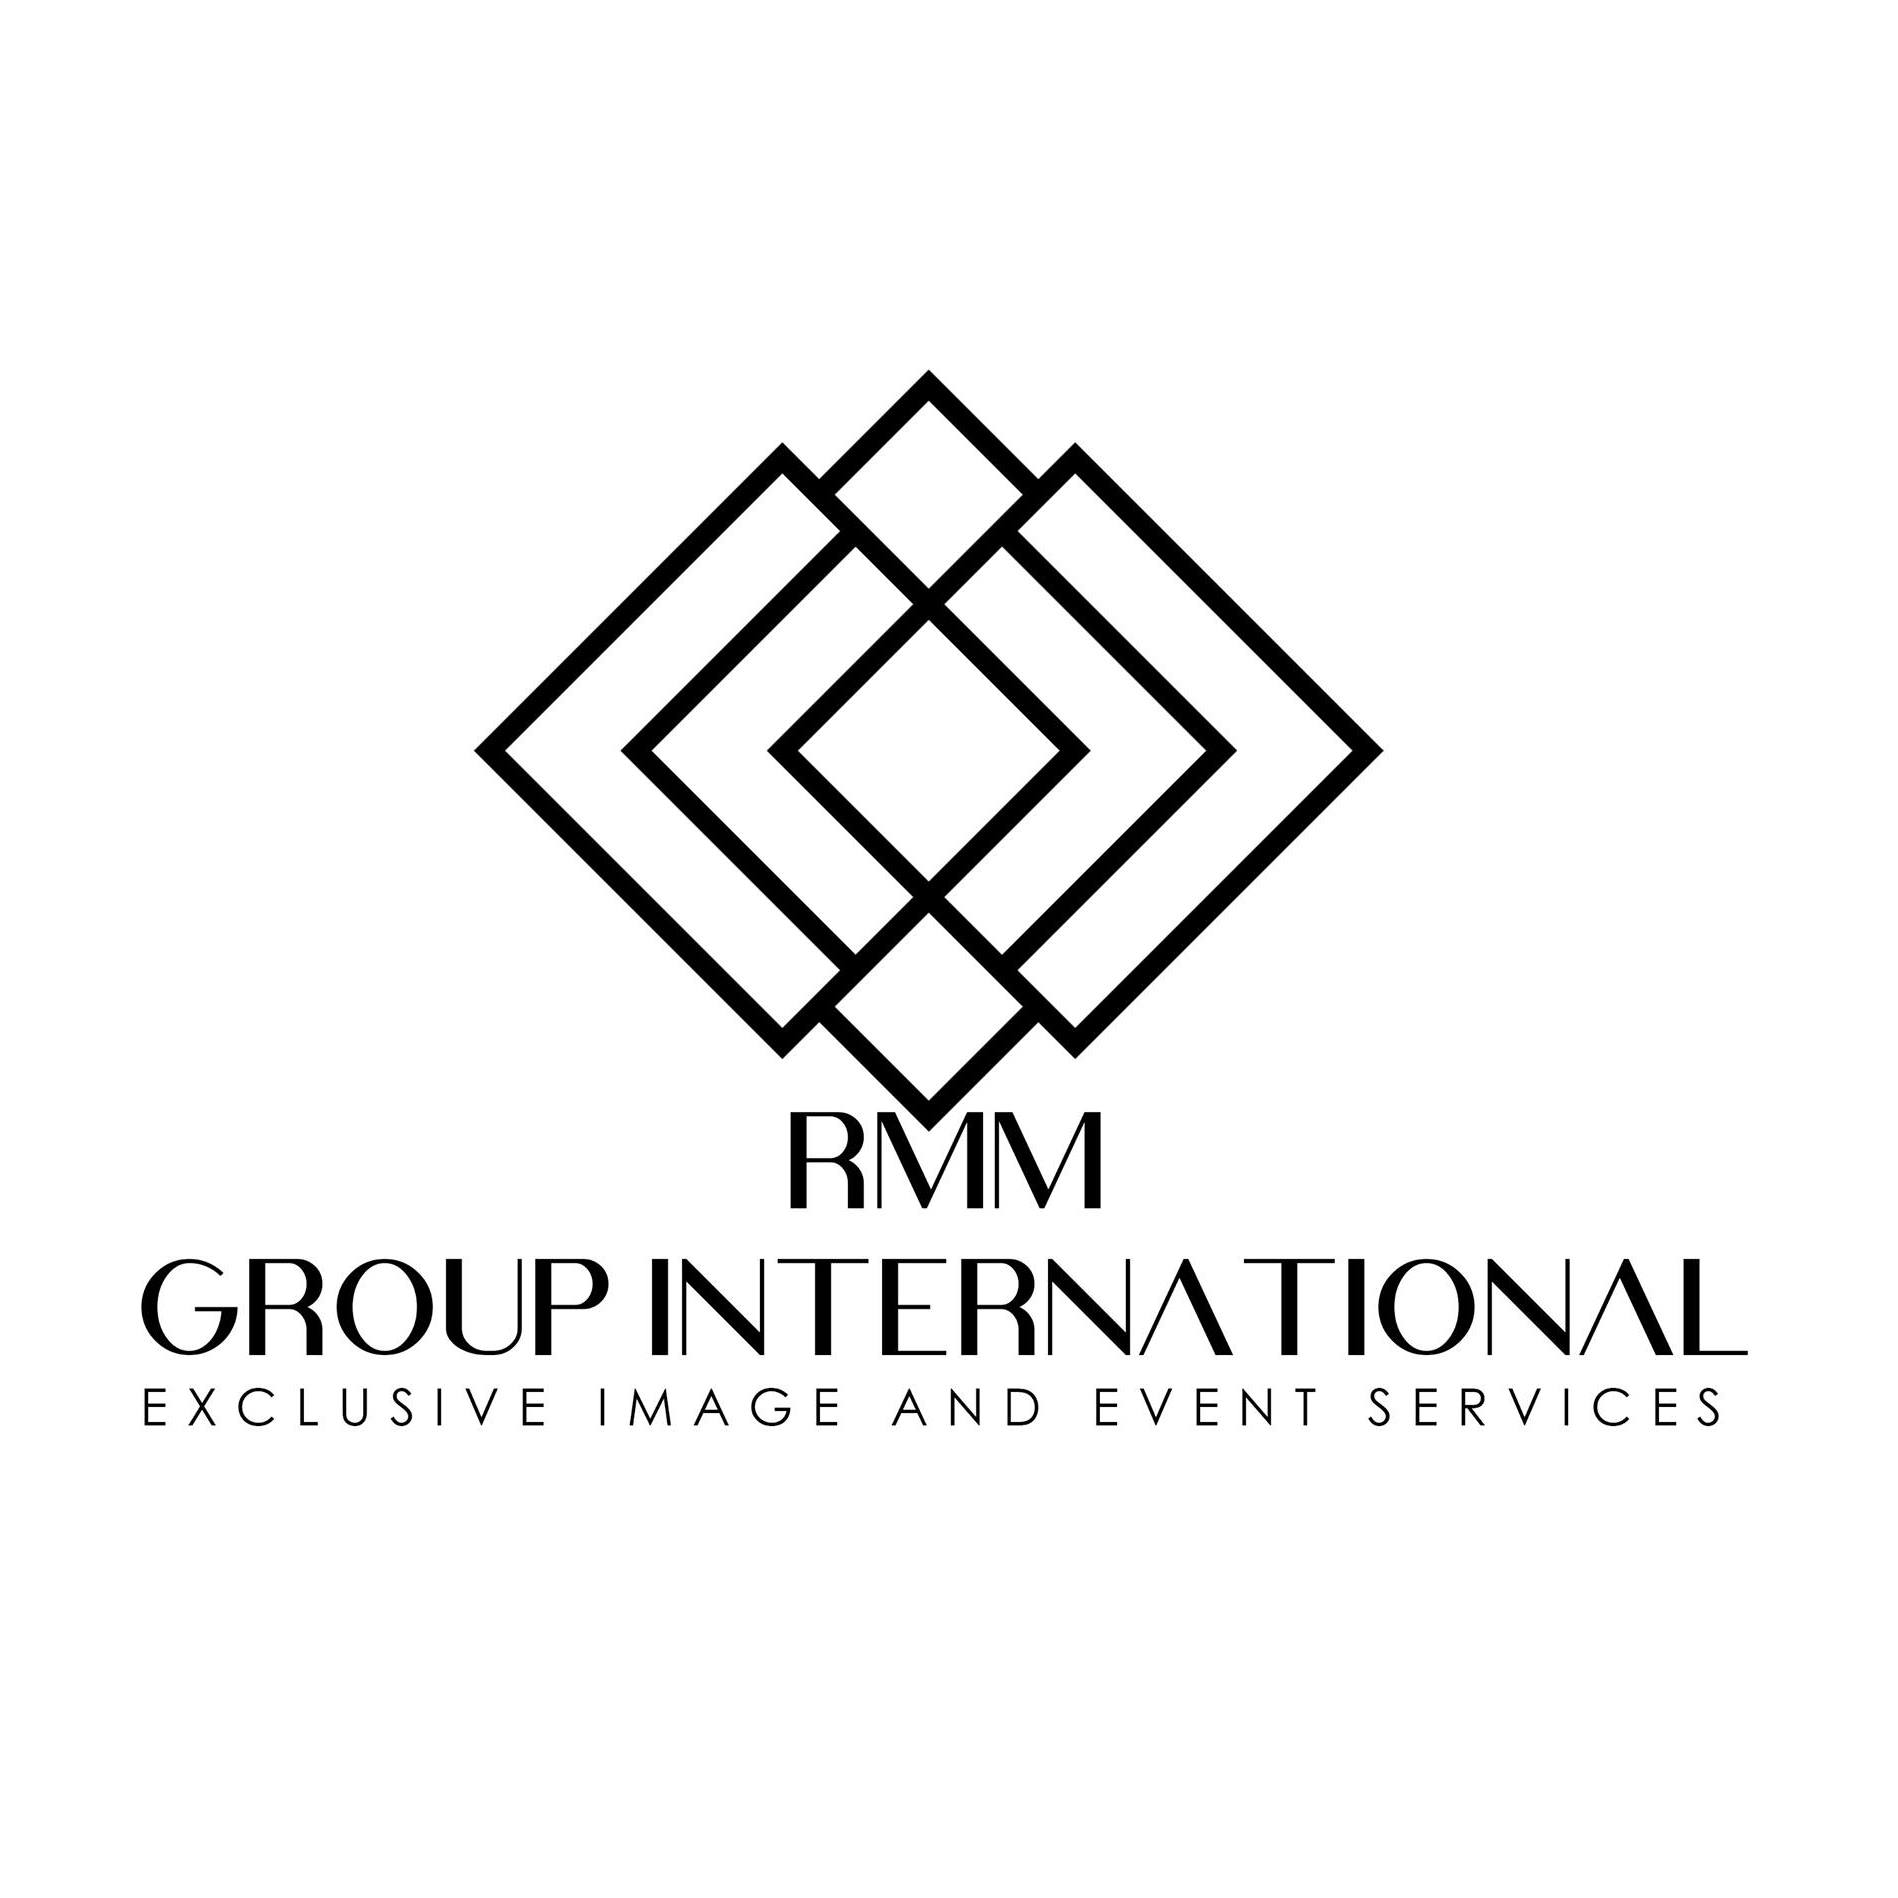 RMM Group International